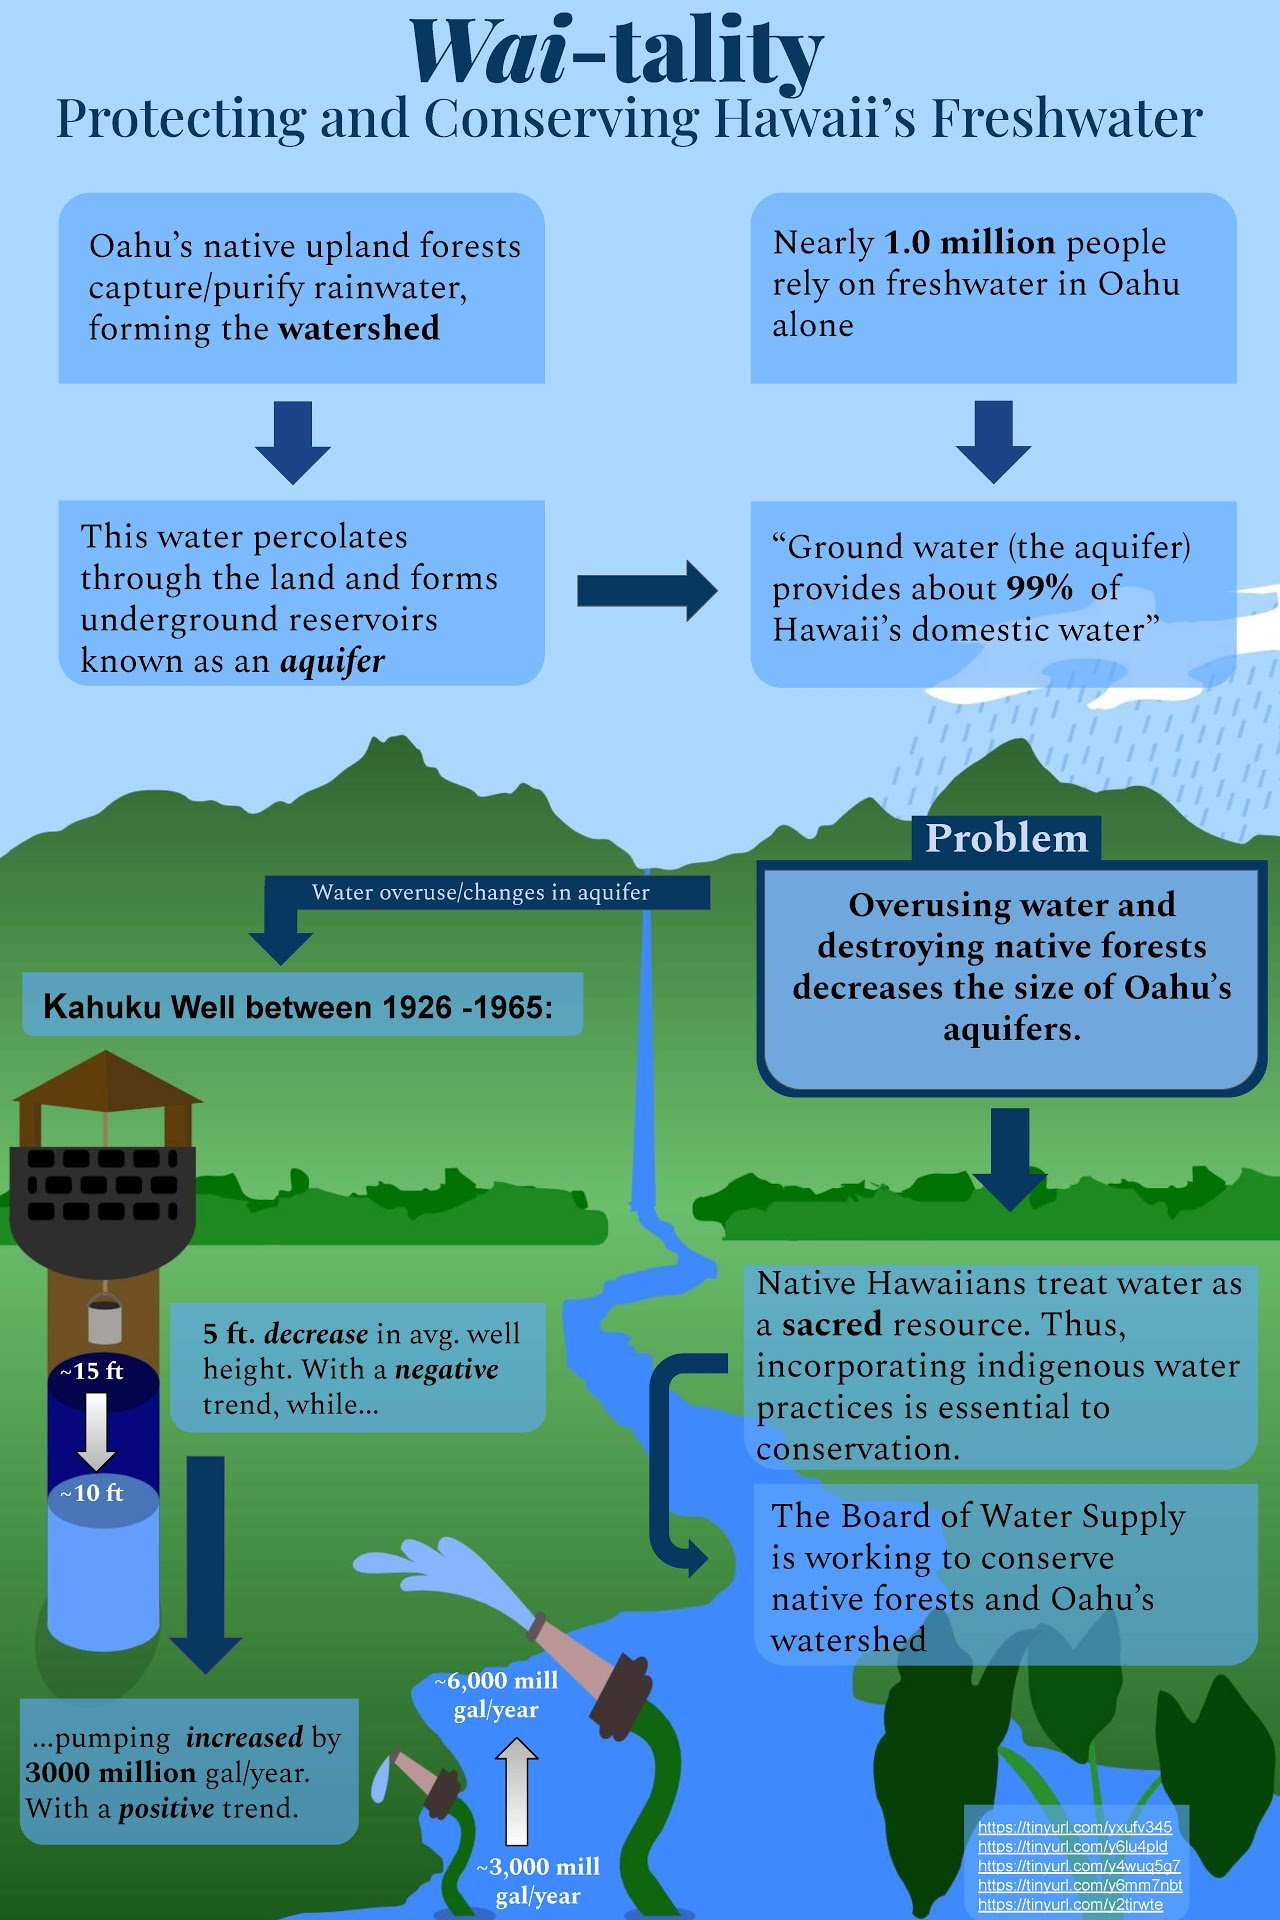 Wai-tality: Protecting and Conserving Hawaii's Freshwater Infographic